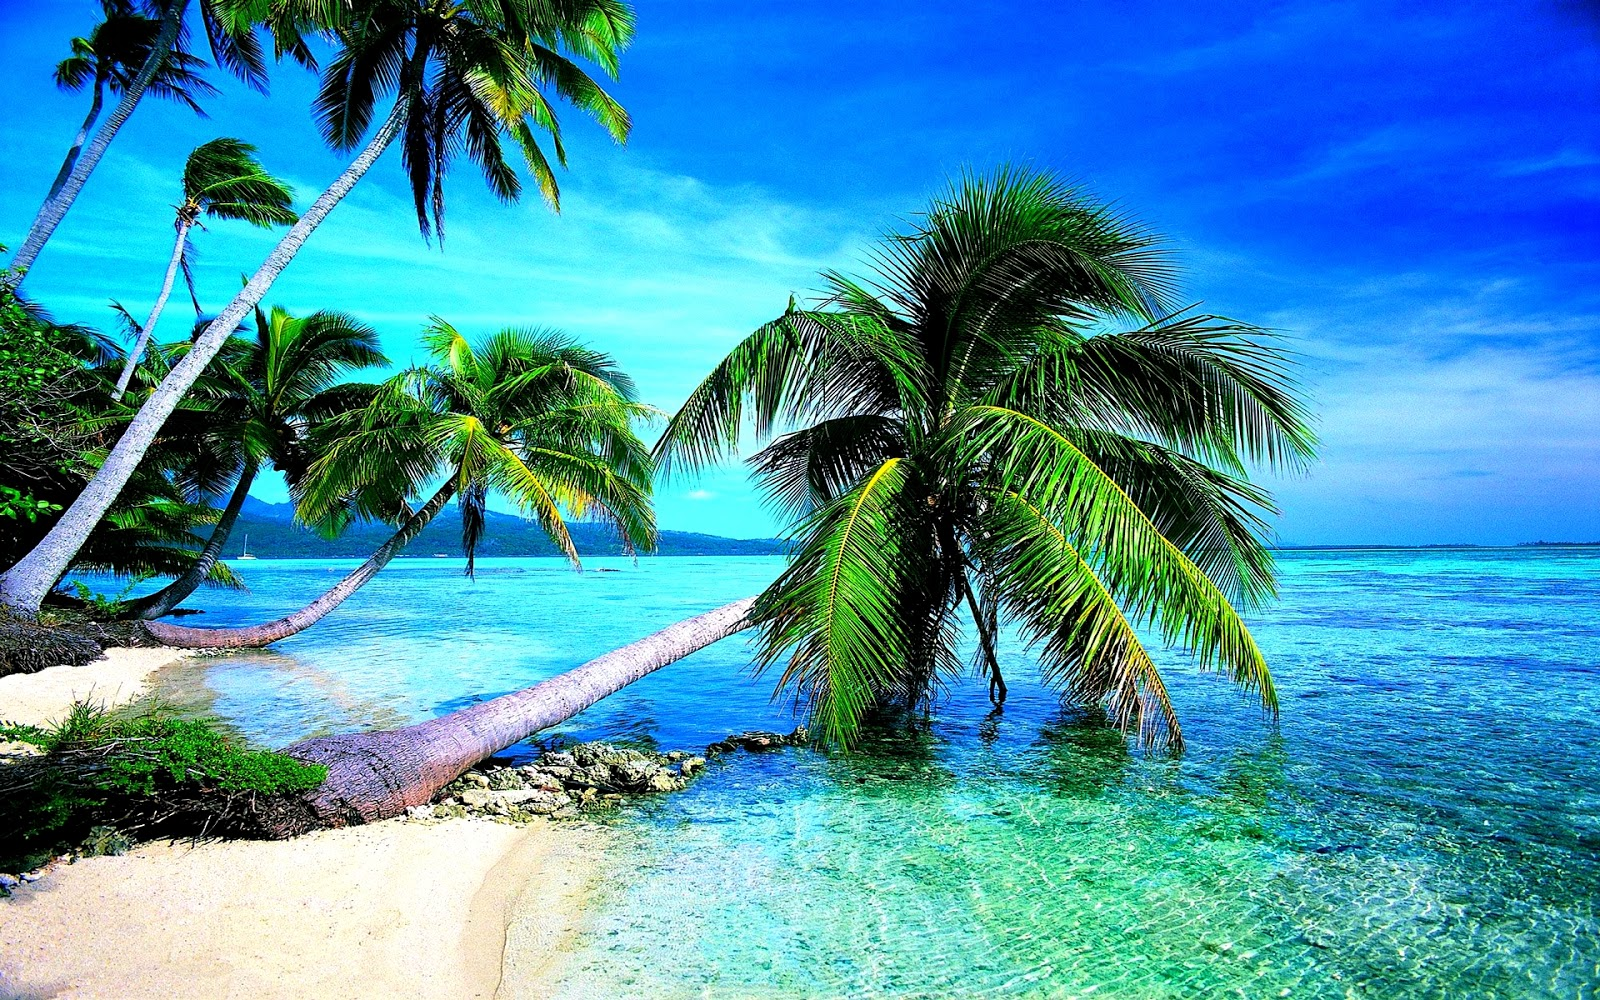 tropical studio backgrounds most beautiful beaches #132